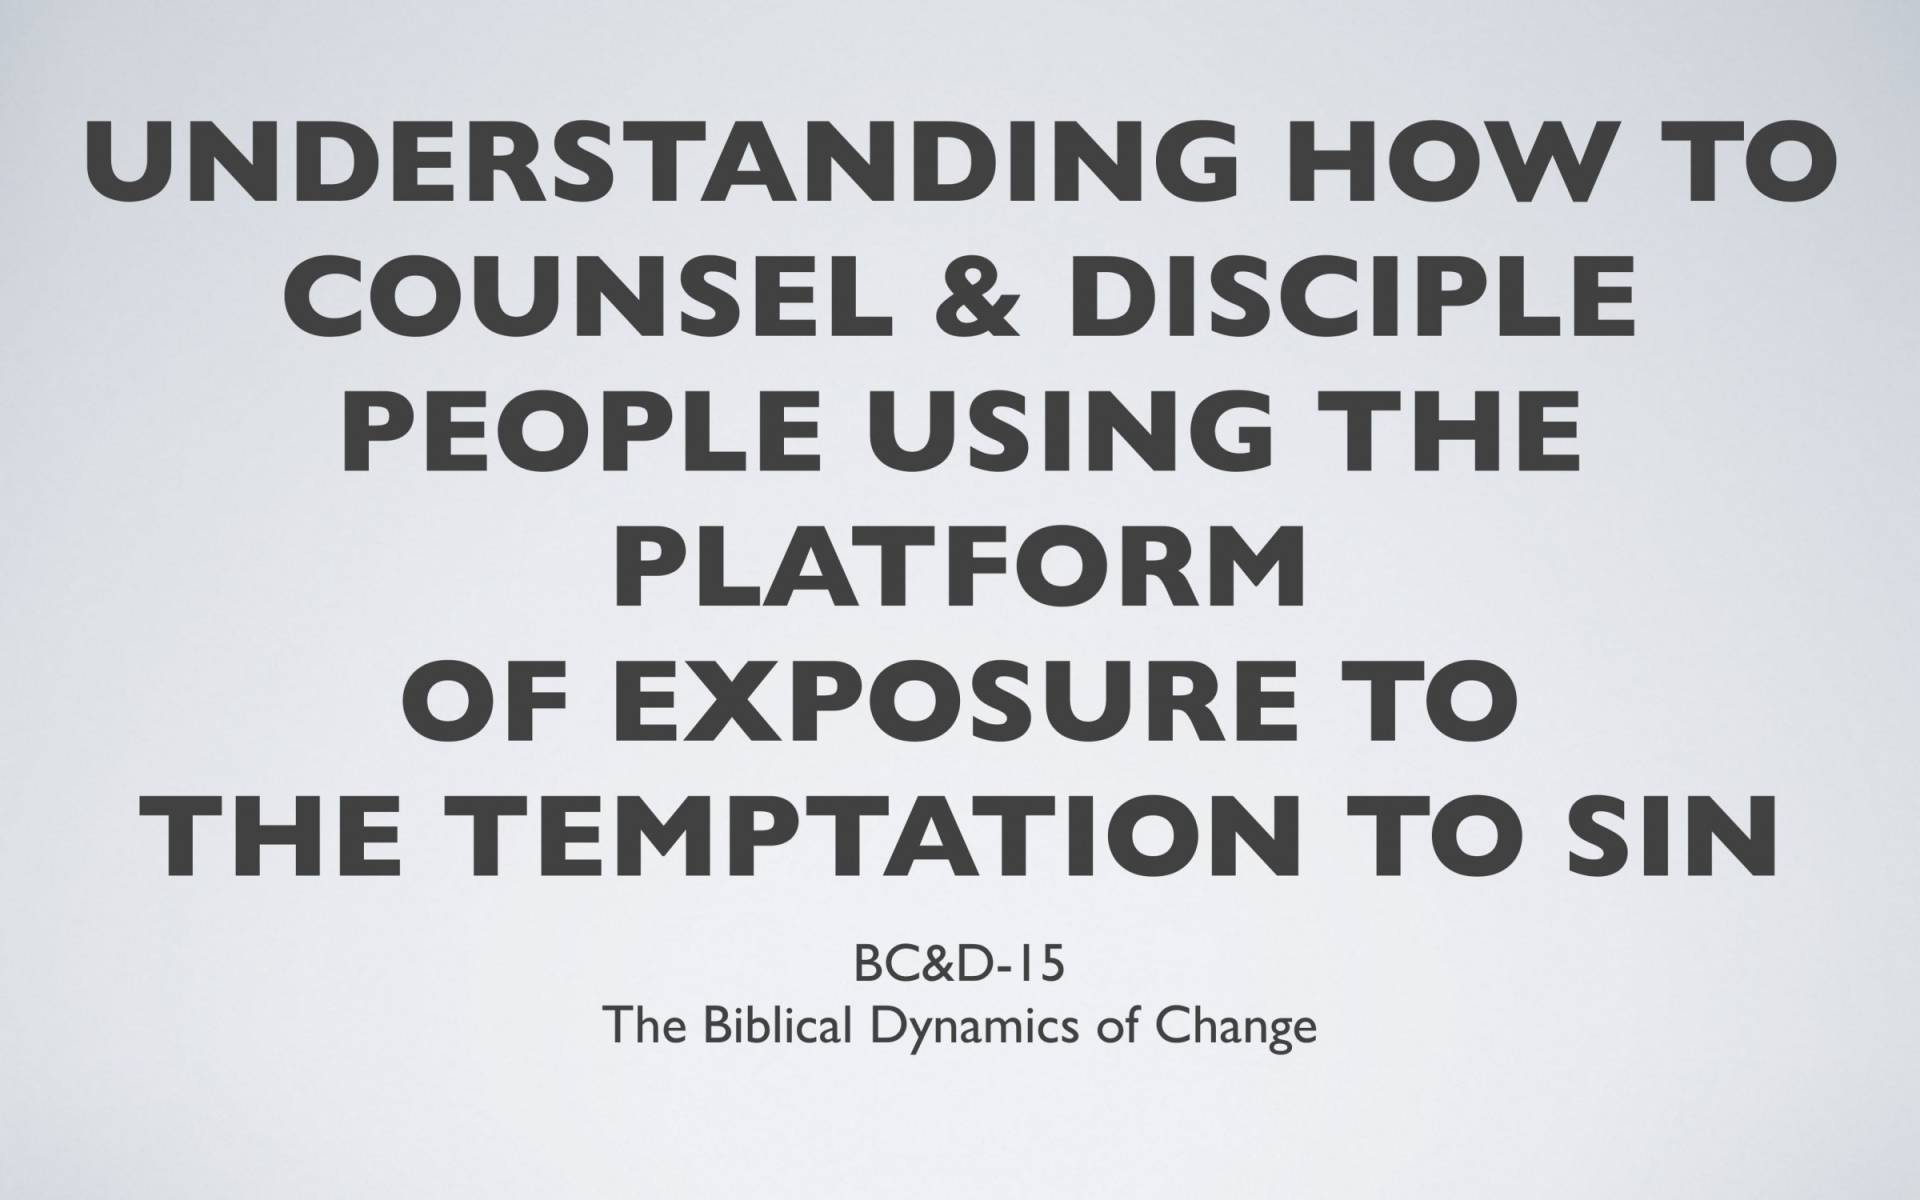 BC&D-16 - Lesson 5-3 - How To Counsel And Disciple People Using The Platform Of Exposure To The Temptation To Sin-01